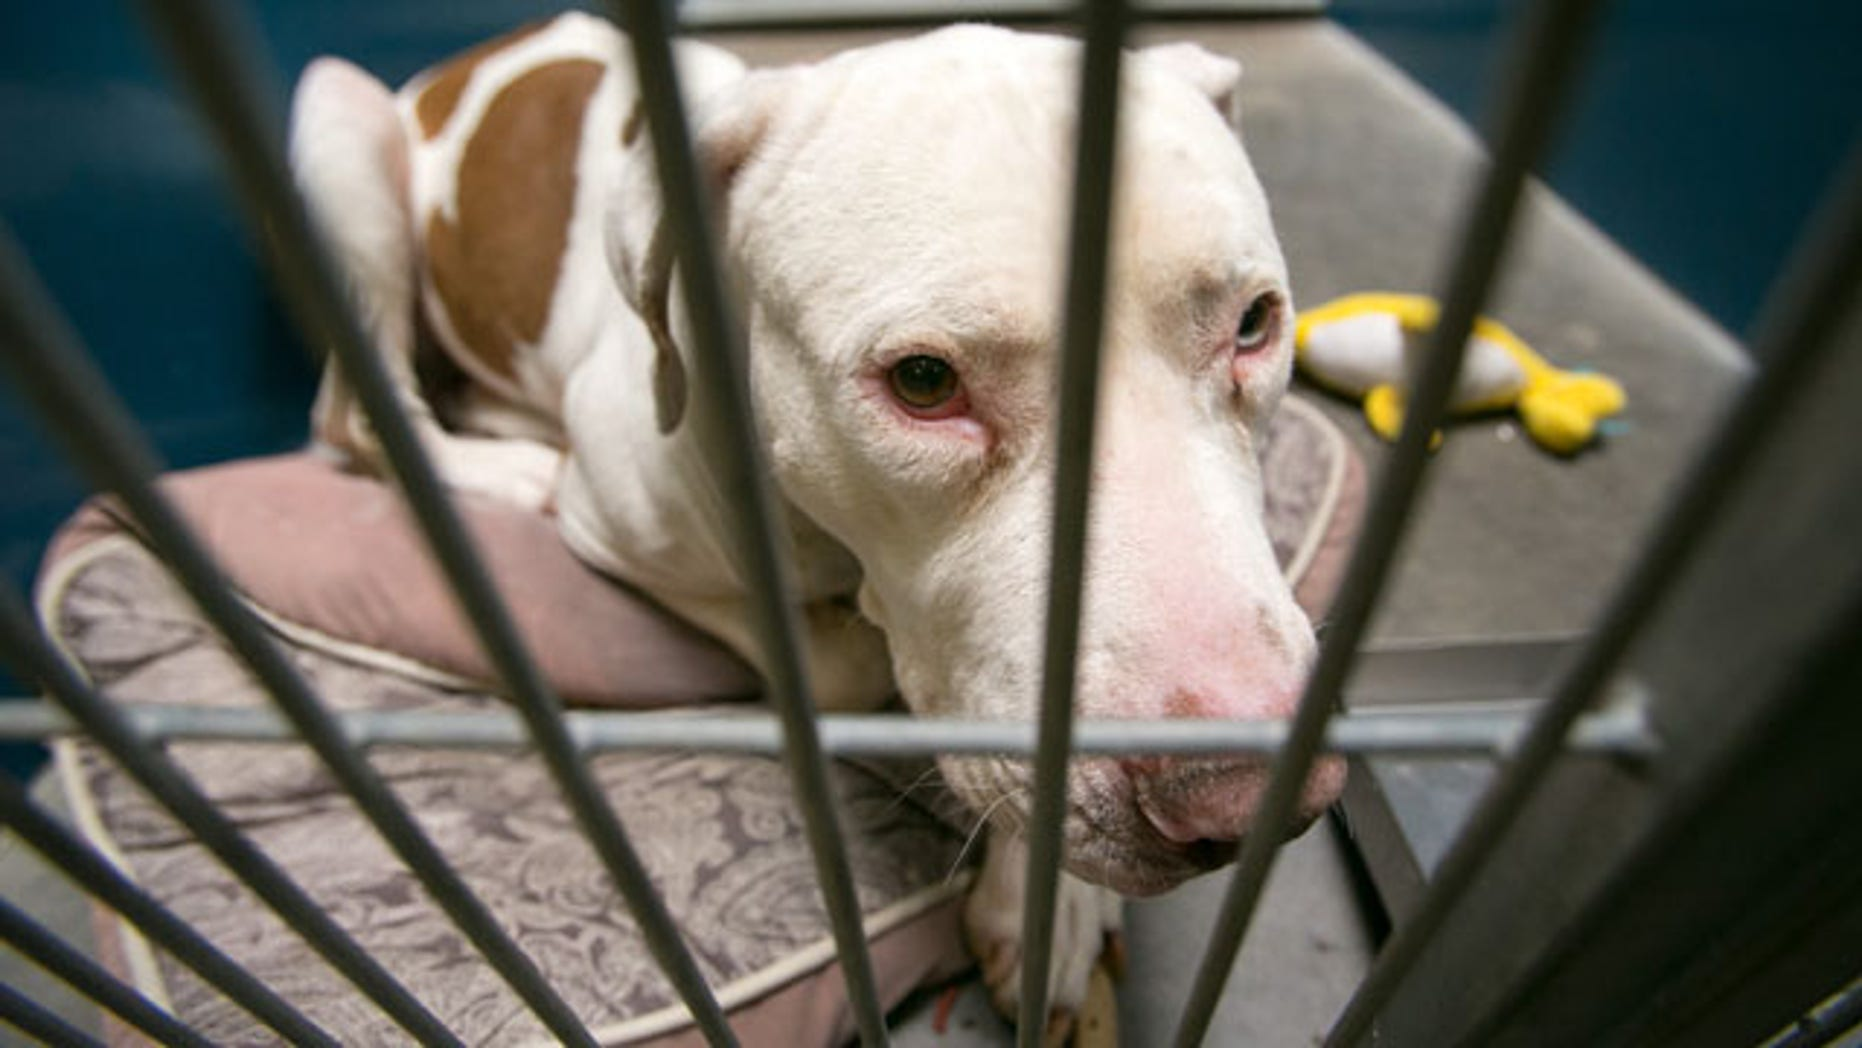 March 11, 2014: This photo shows Mickey, a pit bull, at West Valley Animal Care Center in Phoenix, Ariz. Mickey attacked four-year-old Kevin Vicente on Feb. 20, 2014. Mickey is now the object of a Facebook page that has garnered more than 39,000 likes on Facebook. The fate of Mickey, a pit bull, will ultimately be decided in a court hearing March 25 in Phoenix. Guadalupe Villa, who was at the scene of the attack, has filed a vicious-animal petition to have the dog put down. (AP Photo/The Arizona Republic, Michael Schennum)